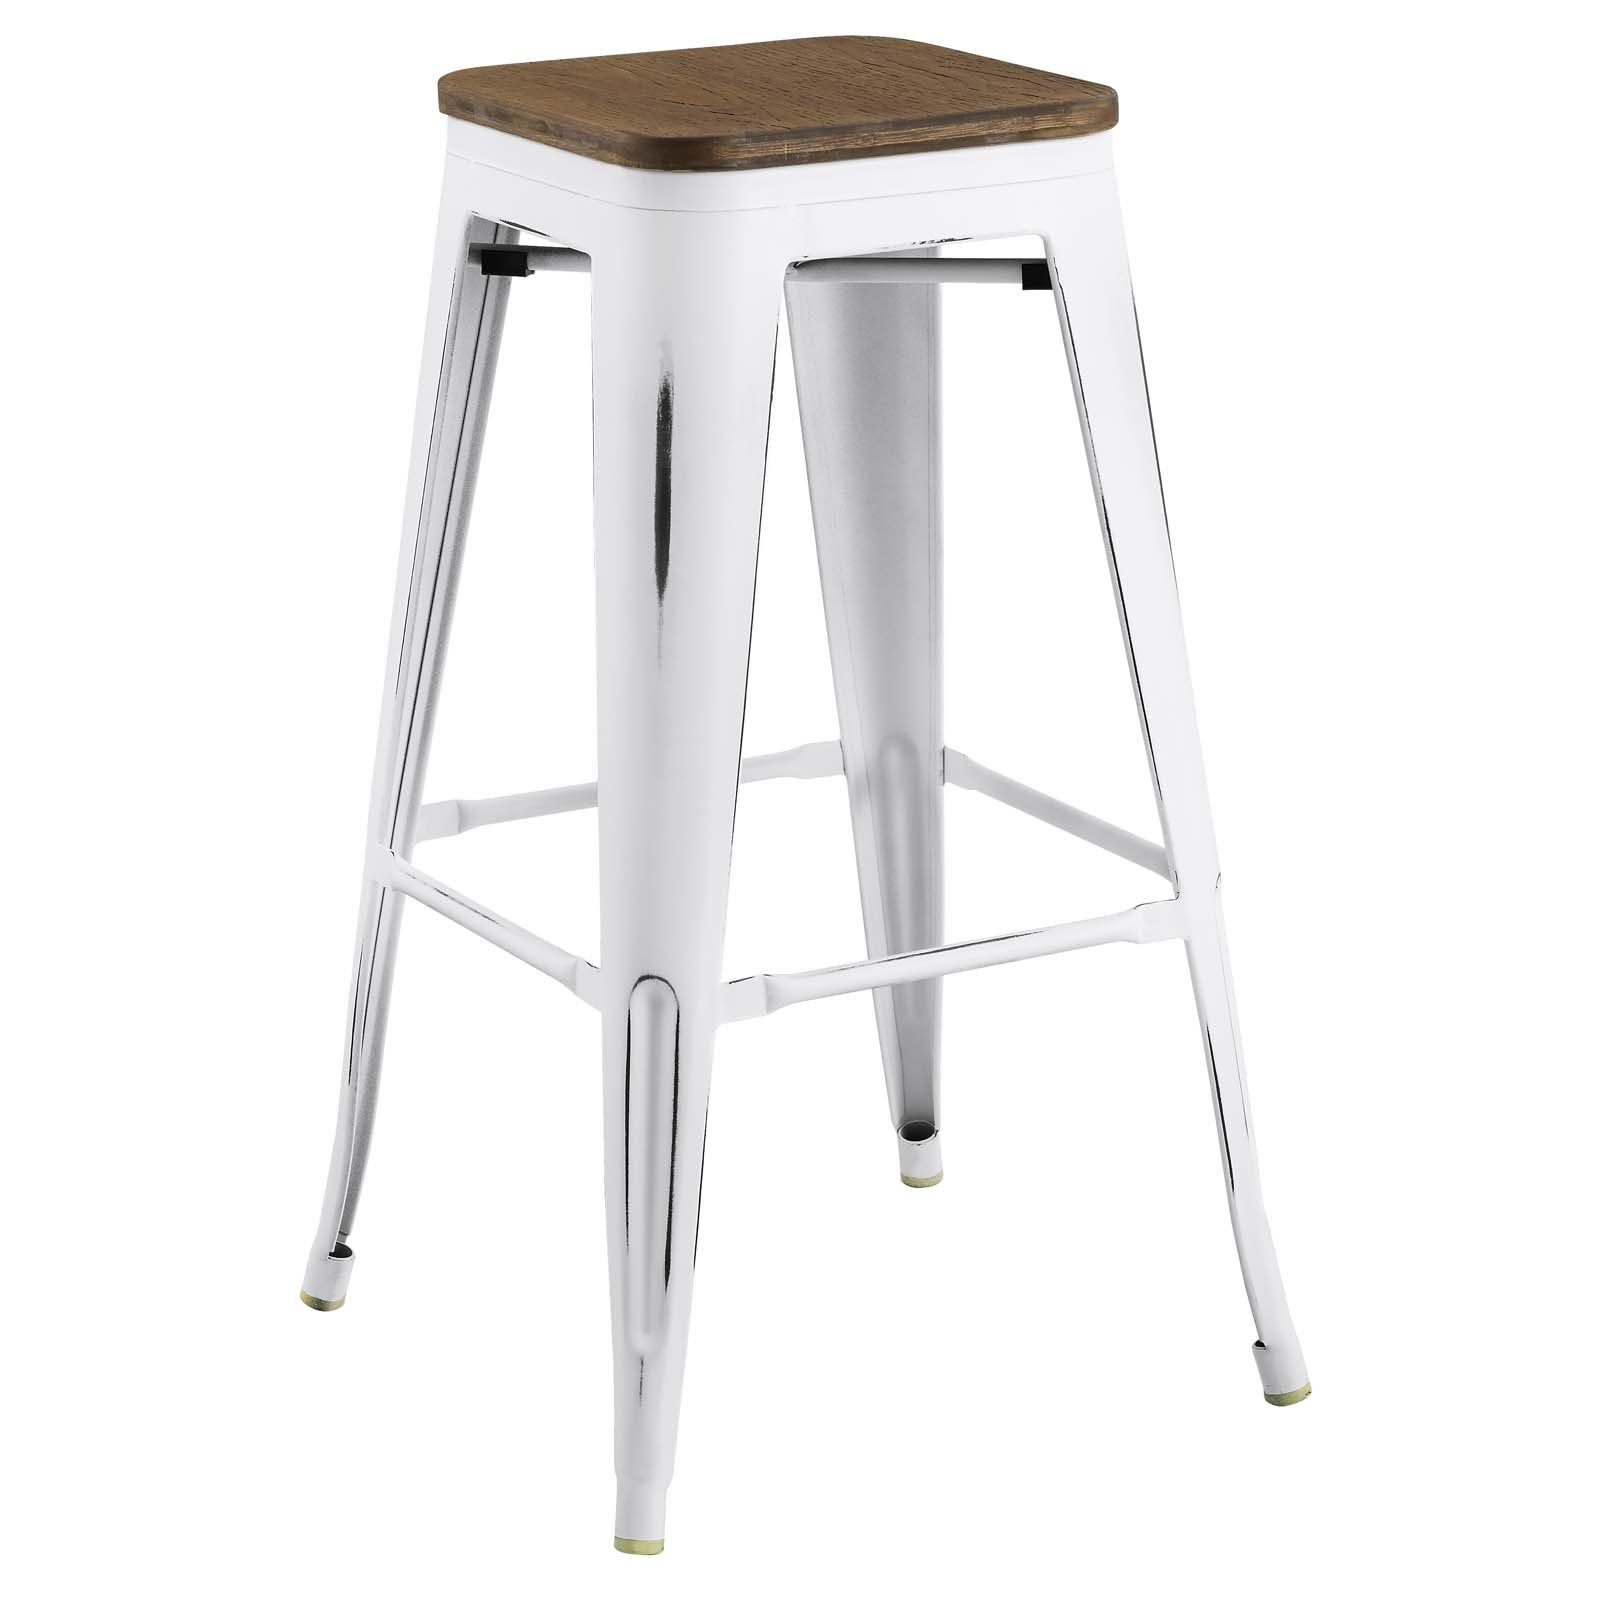 Modway Promenade Industrial Modern Aluminum Backless Bistro Bar Stool with Bamboo Seat in White